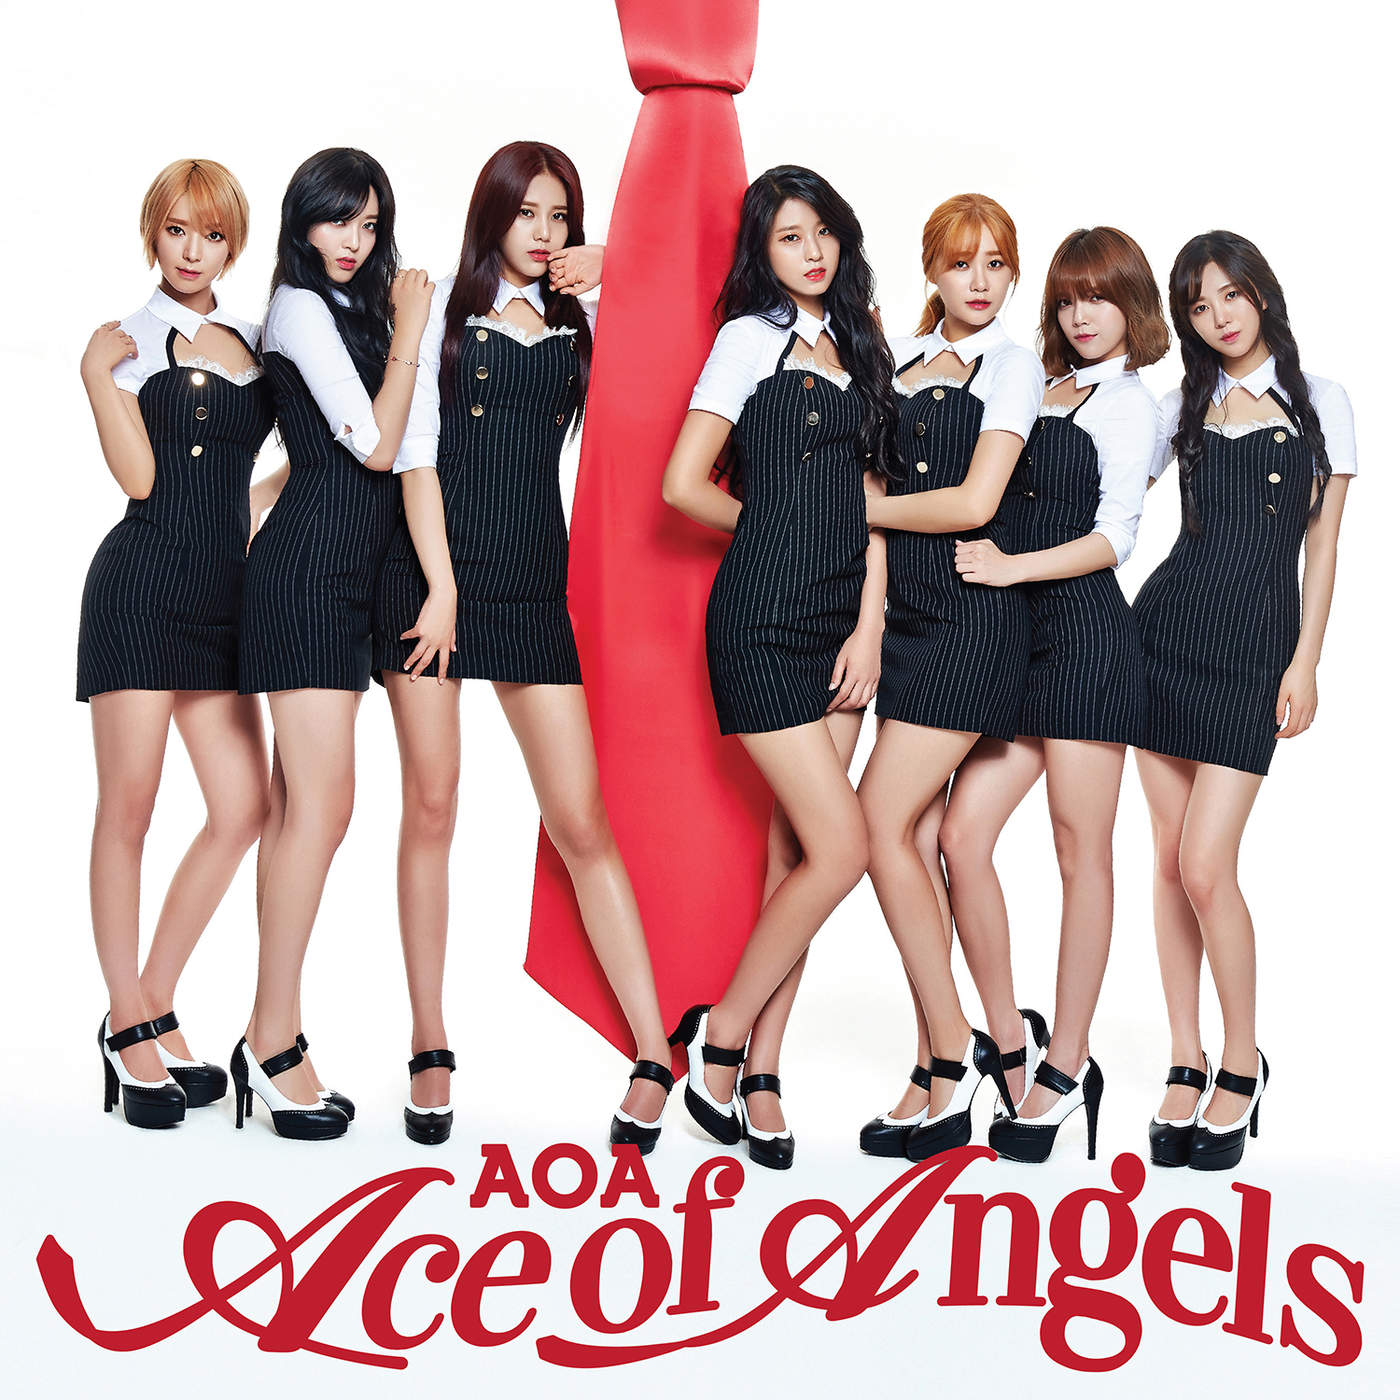 20160811.02.25 AOA - Ace of Angels cover.jpg